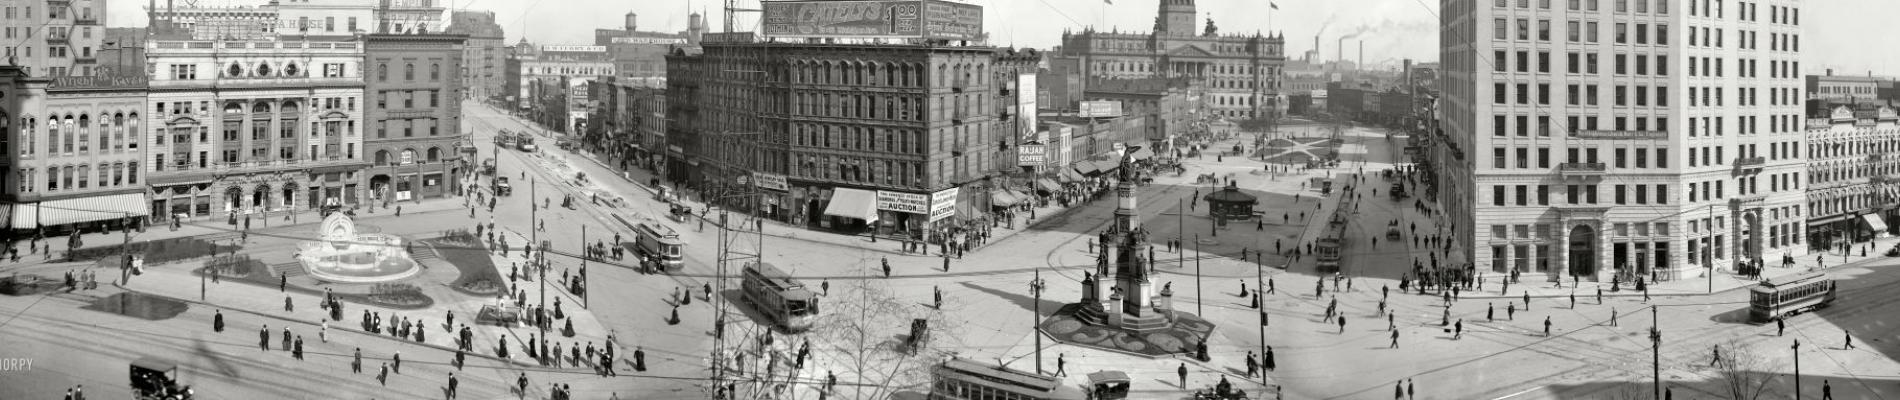 Boom Town: Detroit in the Roaring 20's!